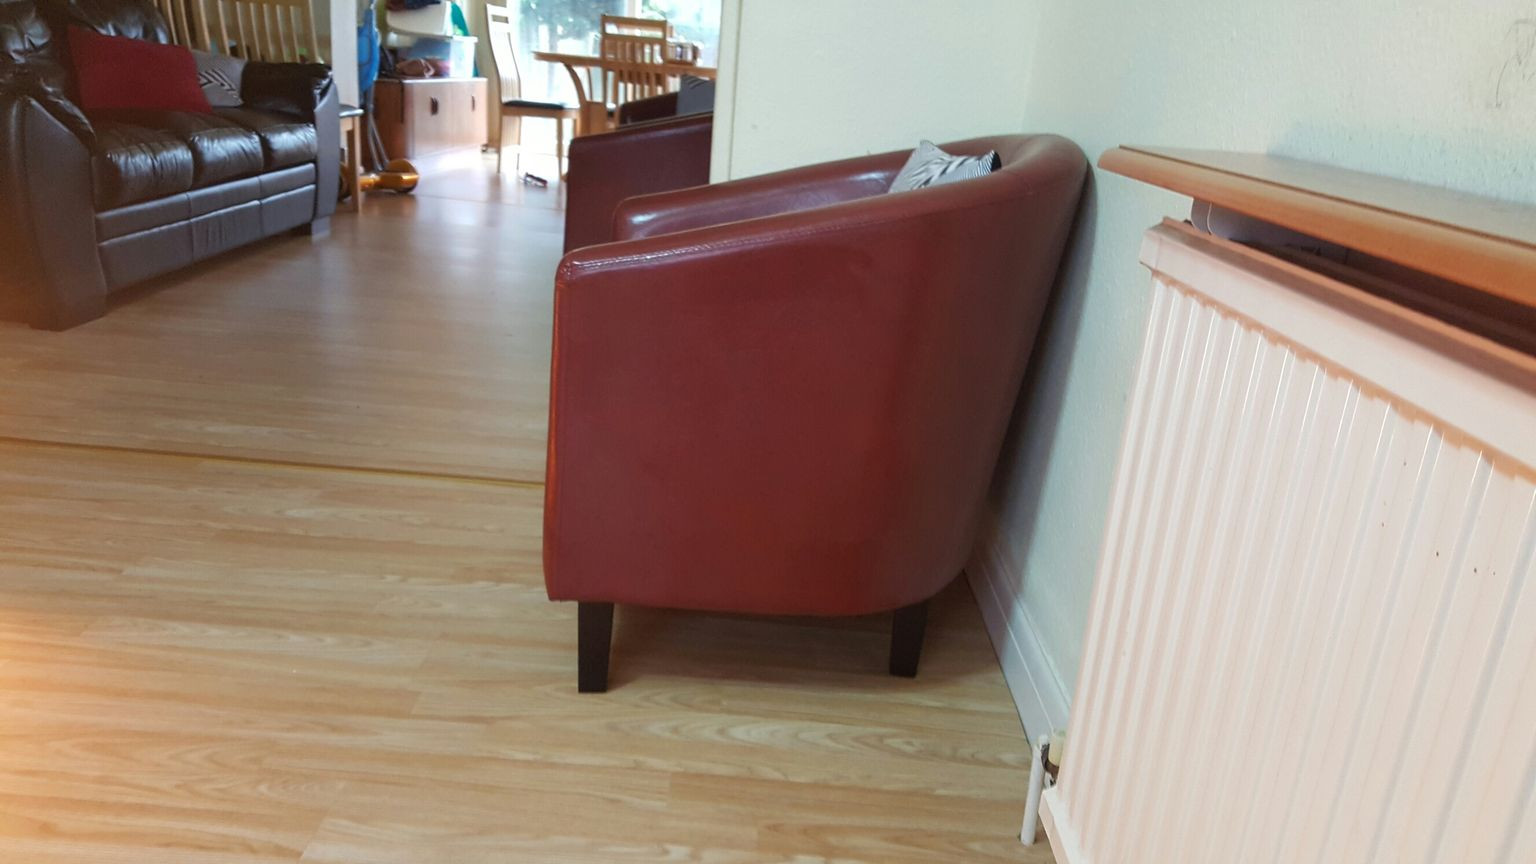 hardwood flooring sale gta of https en shpock com i wnvflguijqigmhej 2017 11 25t203102 intended for red leather sofa chairs 4